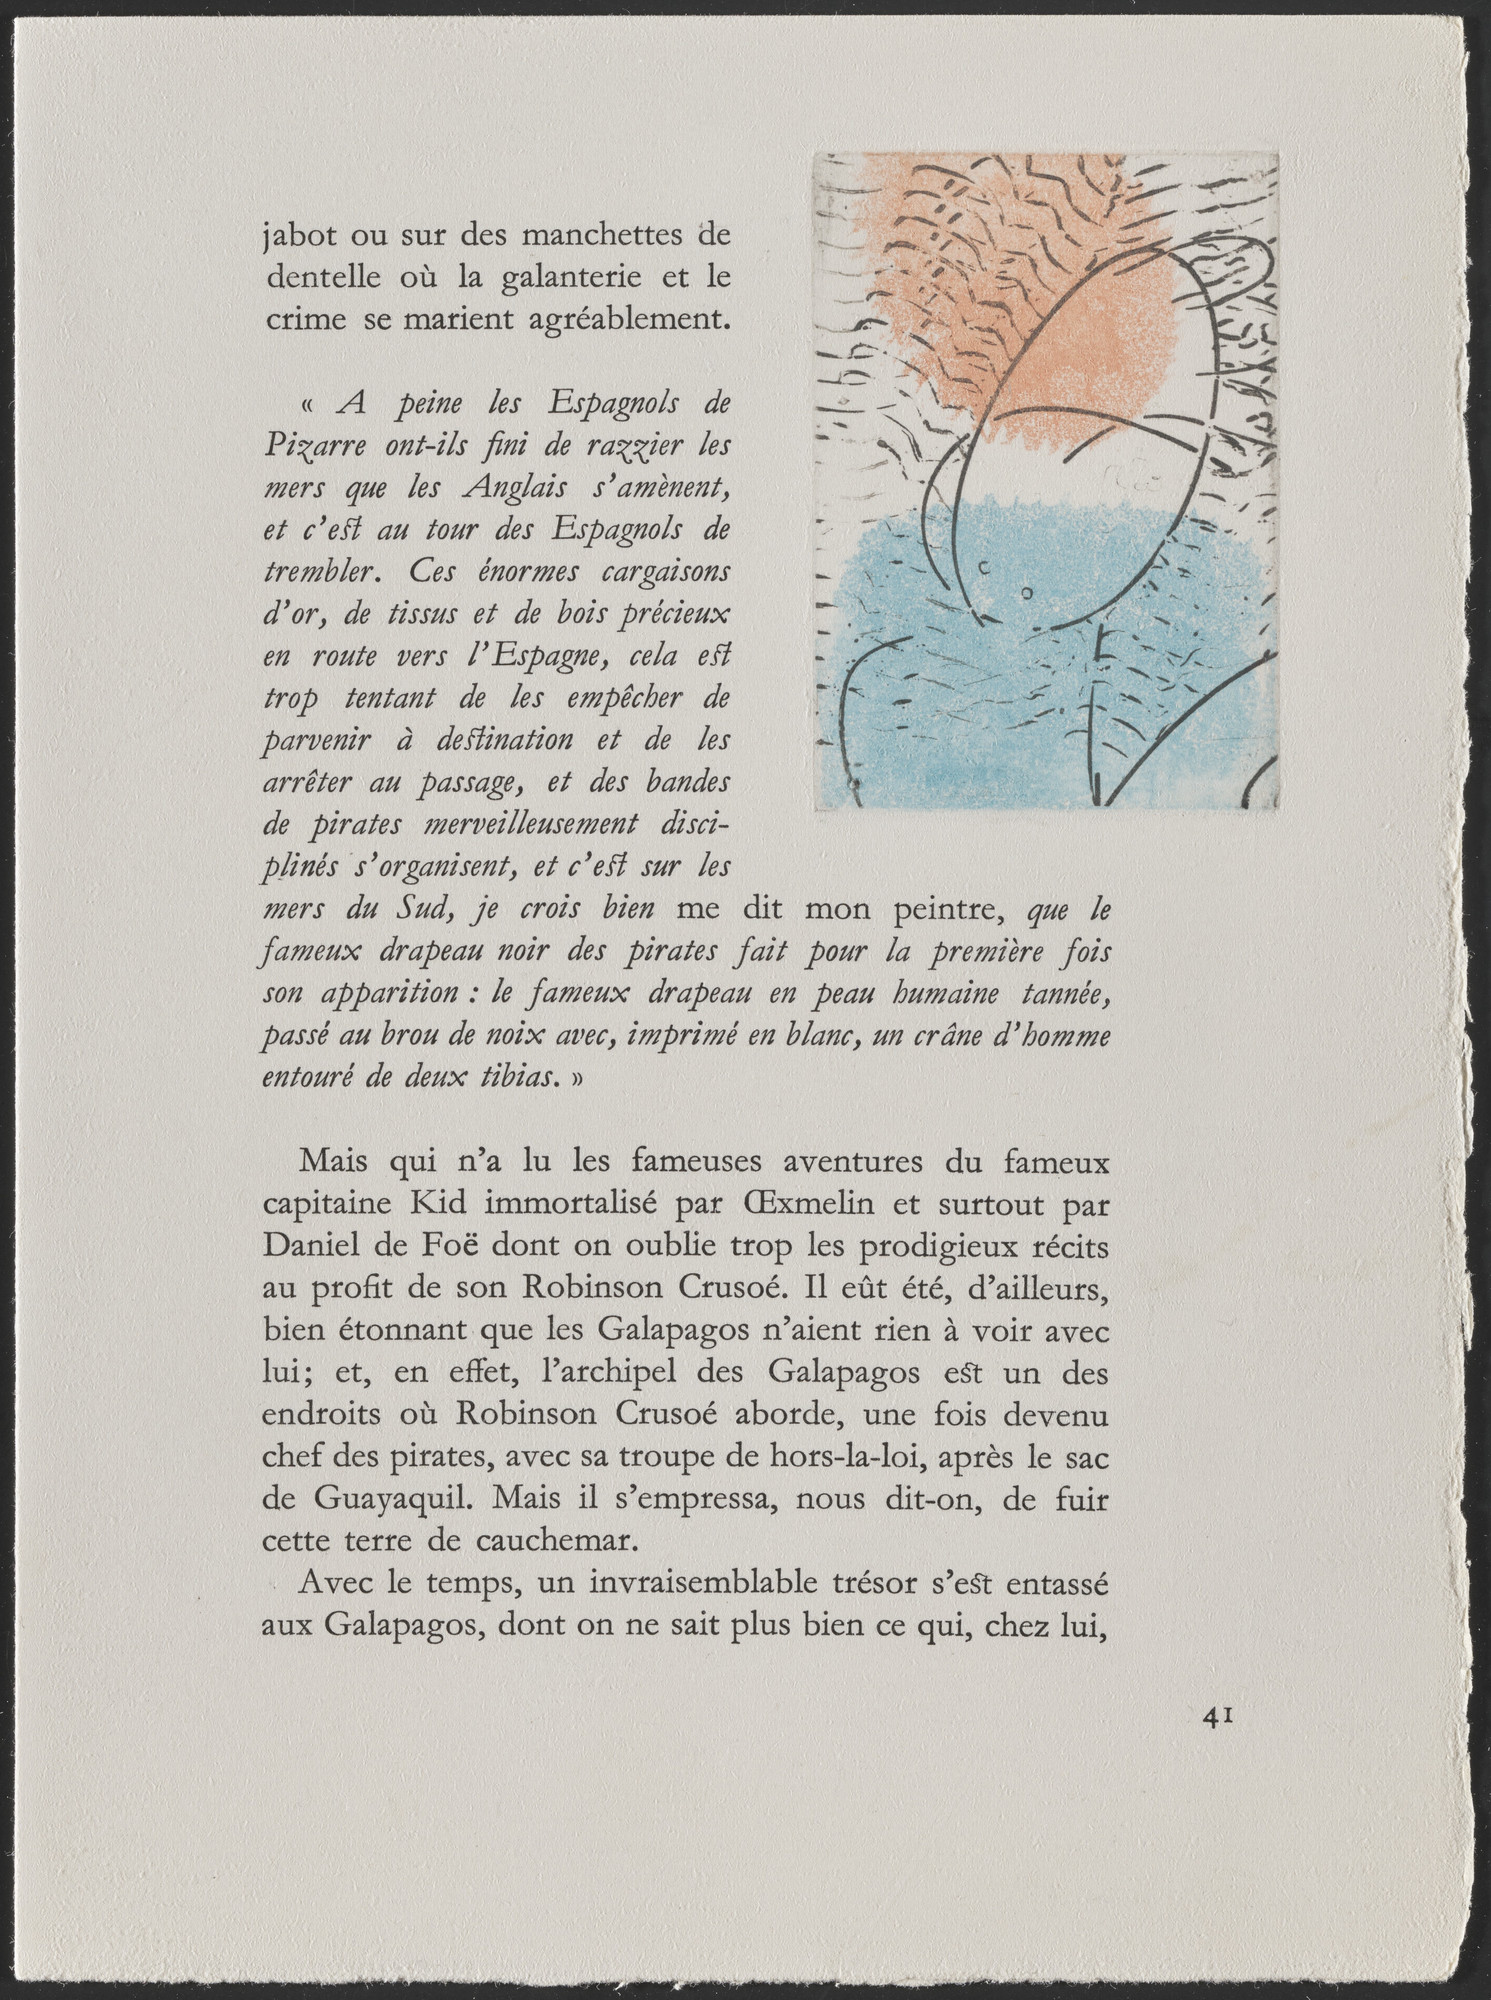 Max Ernst. In-text plate (page 41) from Galapagos: Les Iles du bout du monde. 1955